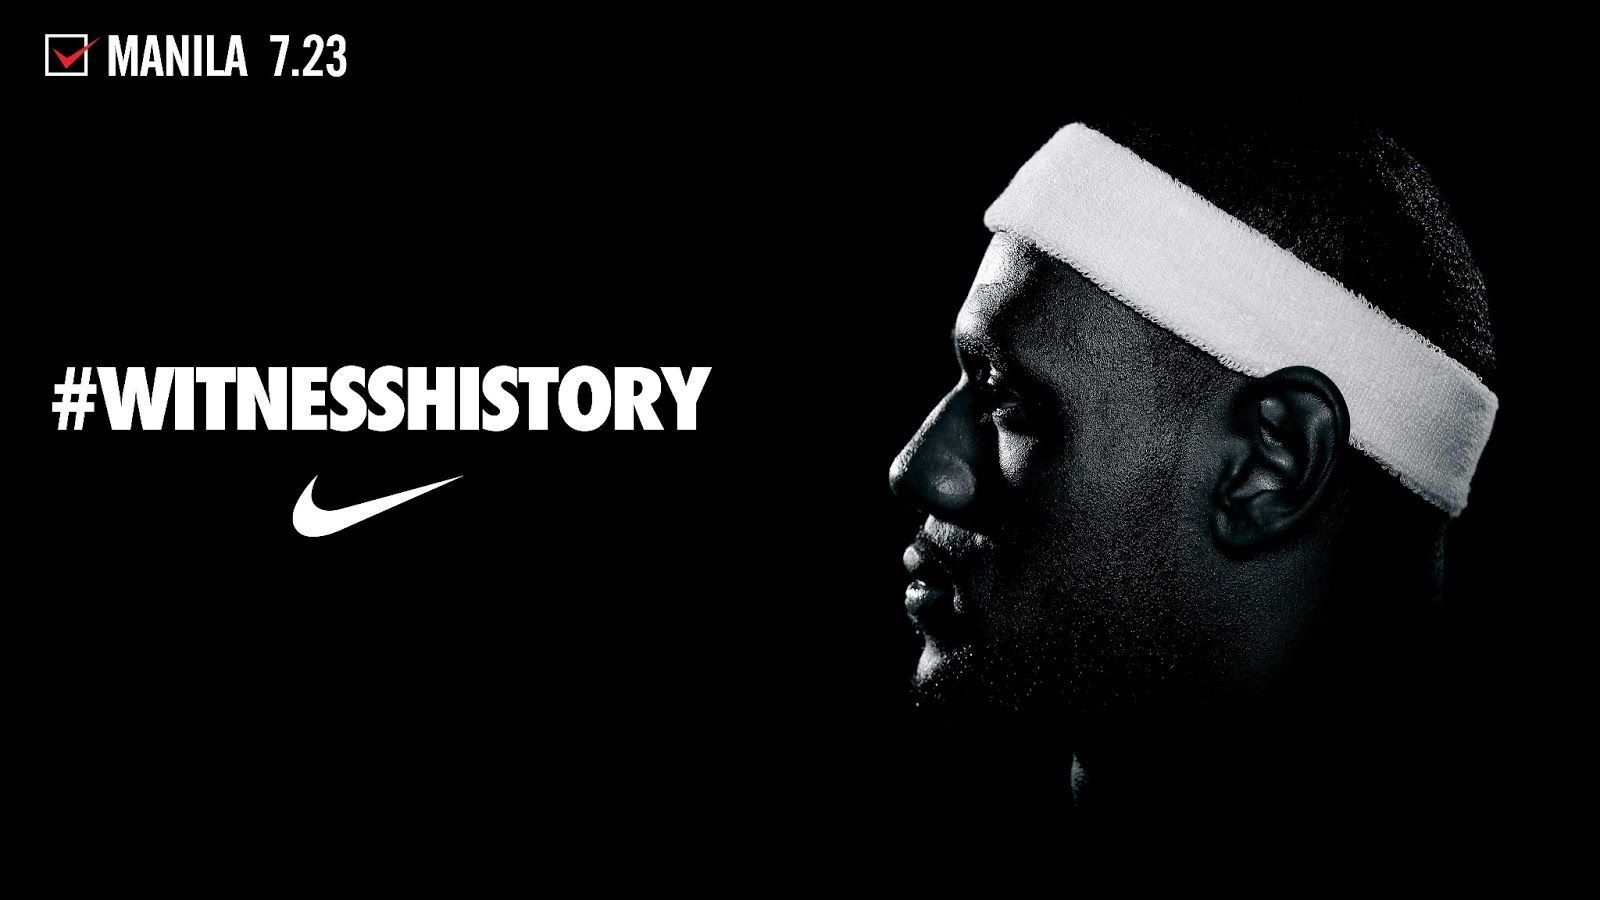 Download Lebron James Logo Wallpaper Gallery